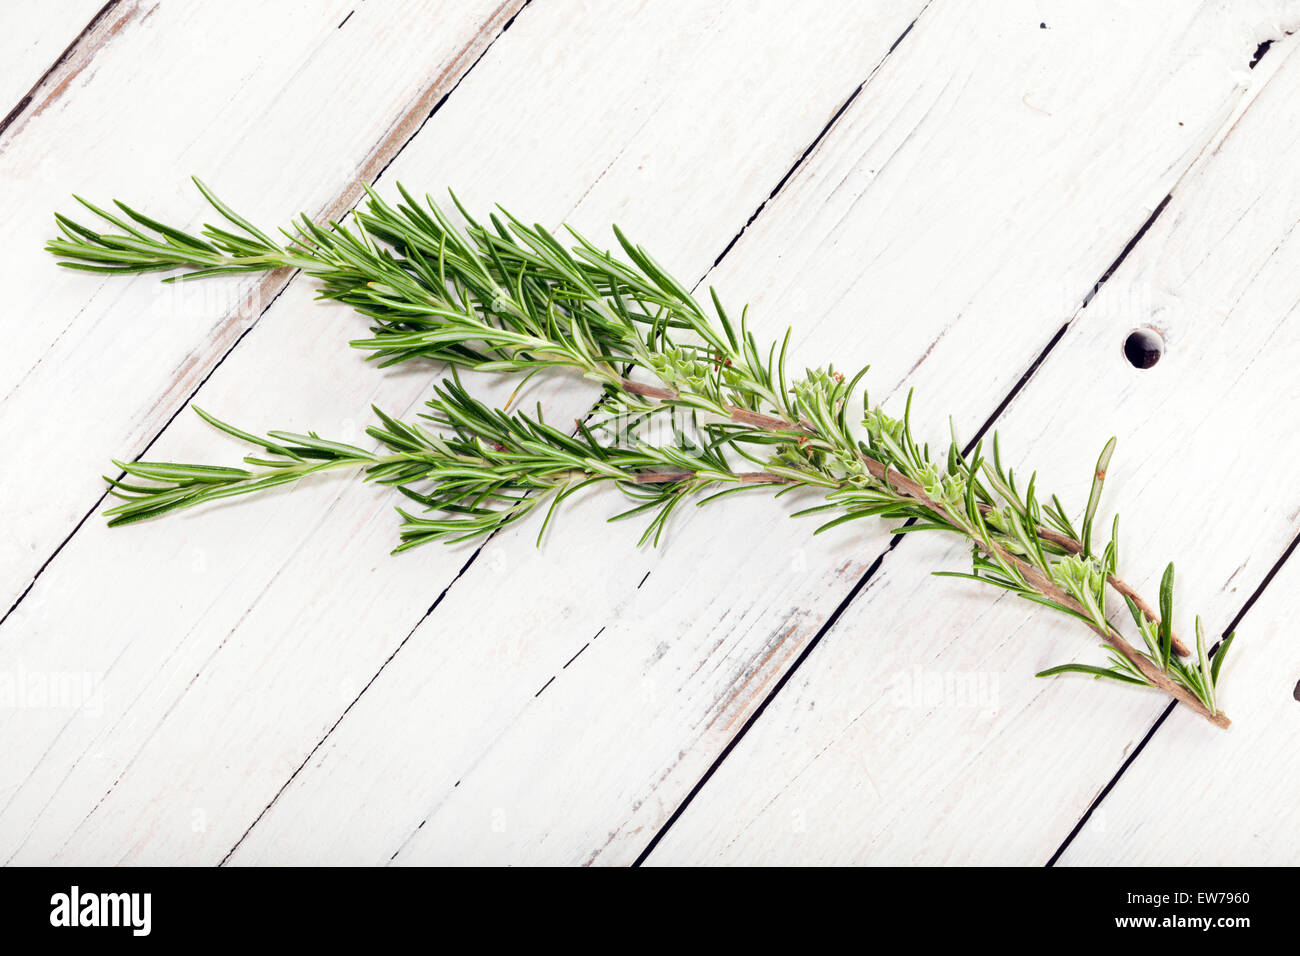 rosemary twig on white wooden rustic background - Stock Image